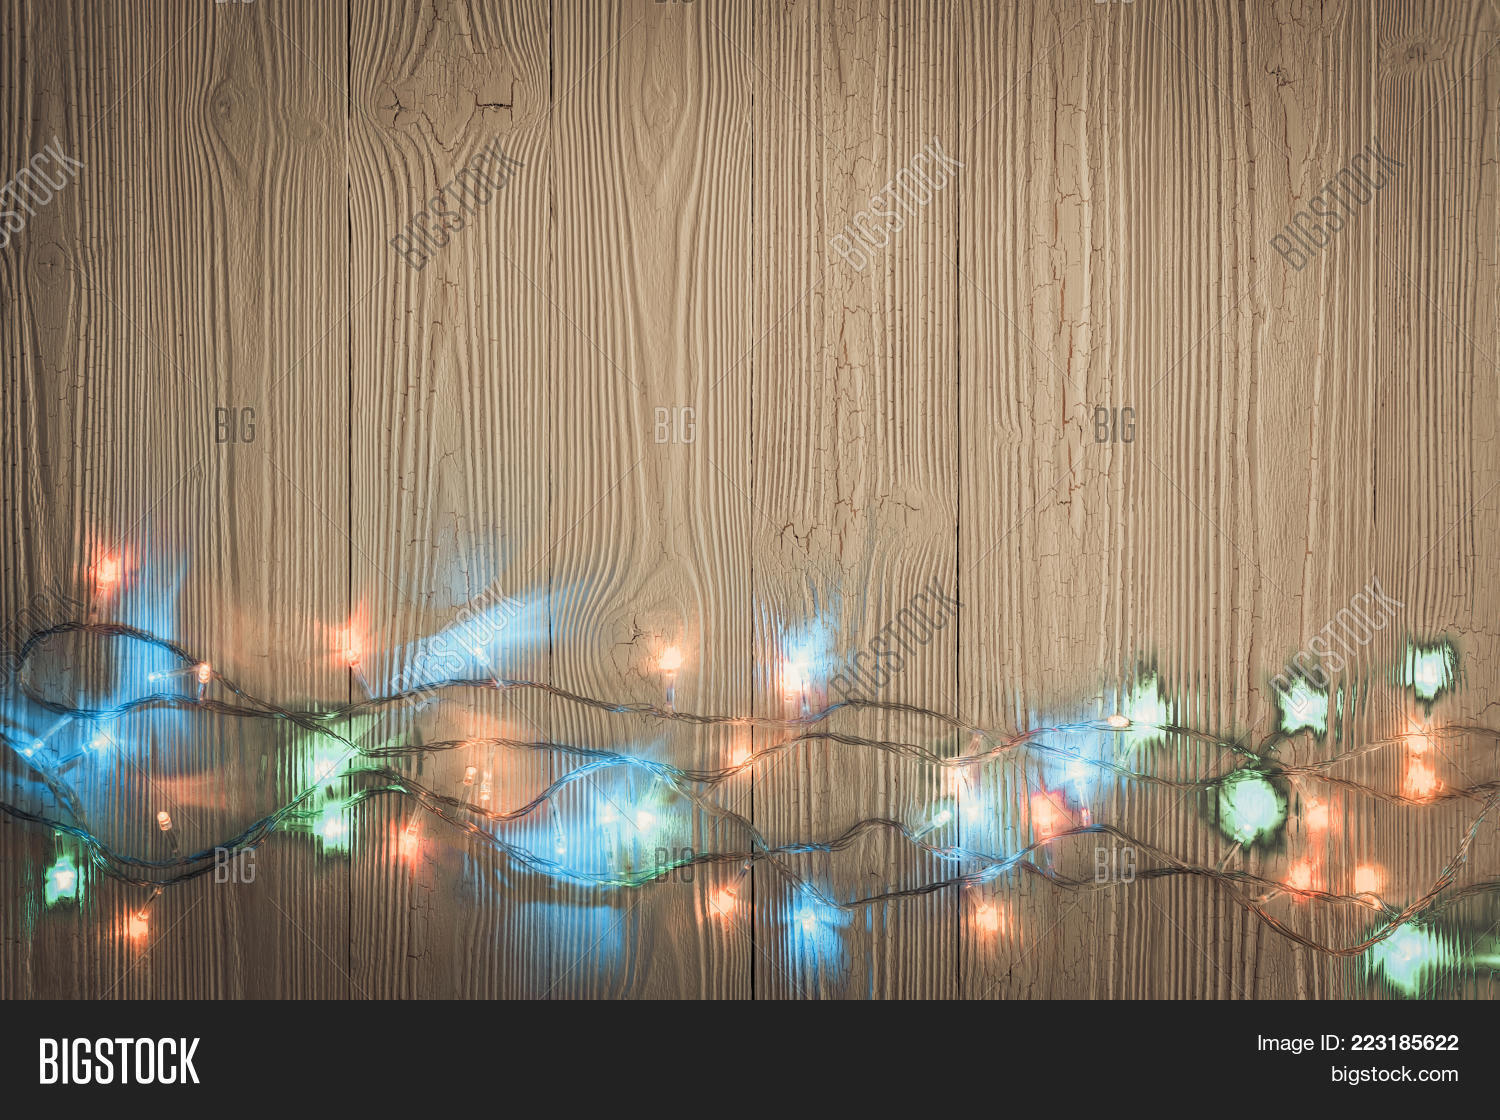 Fancy blinker light bulbs or garlands and wreath on wood table for Christmas or New years